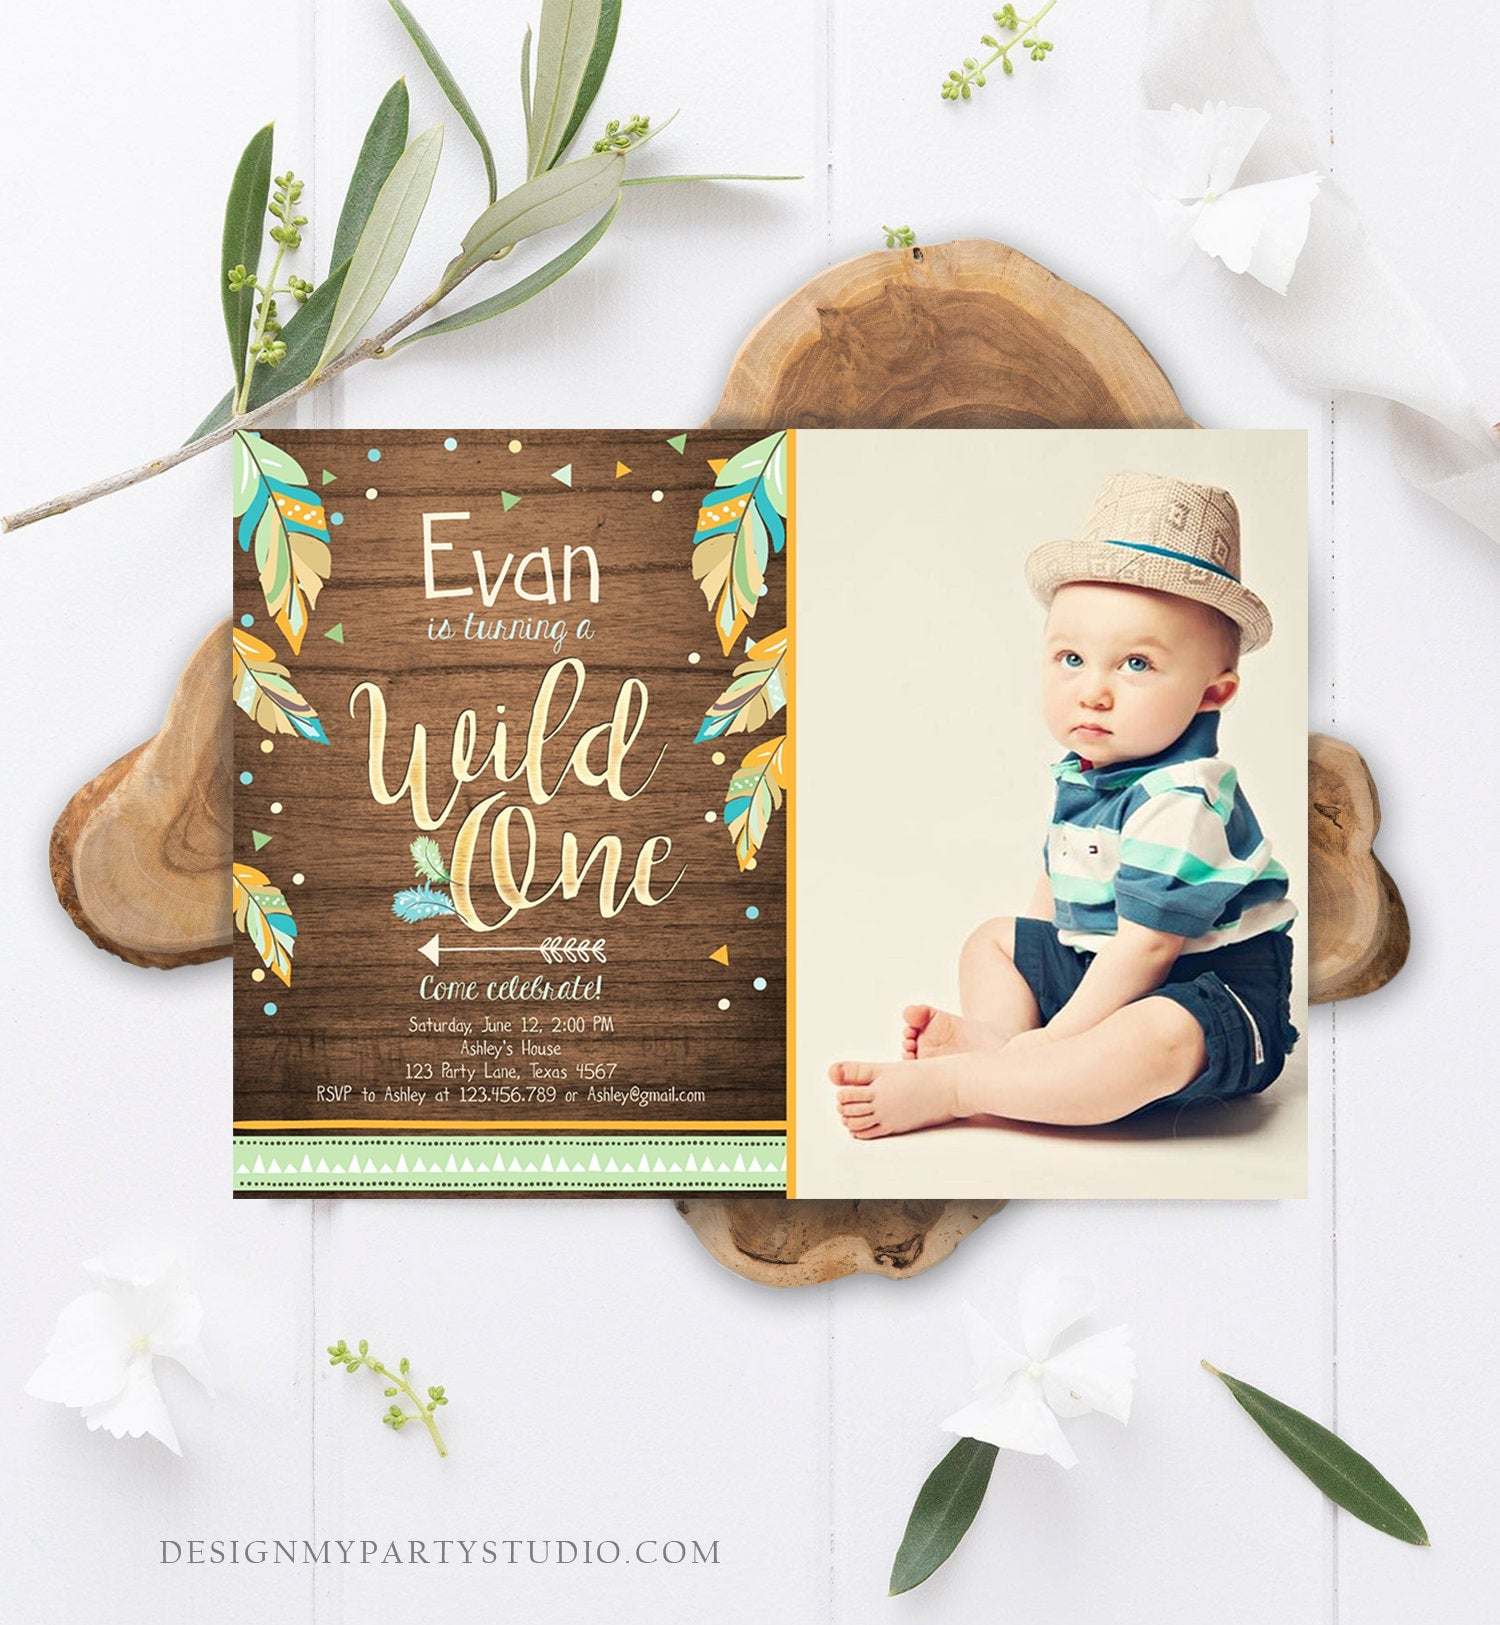 Editable Wild One Invitation Tribal Feathers Boy Green Teal Coral Mint Wood Gold First Birthday 1st Boho Photo Corjl Template Printable 0038